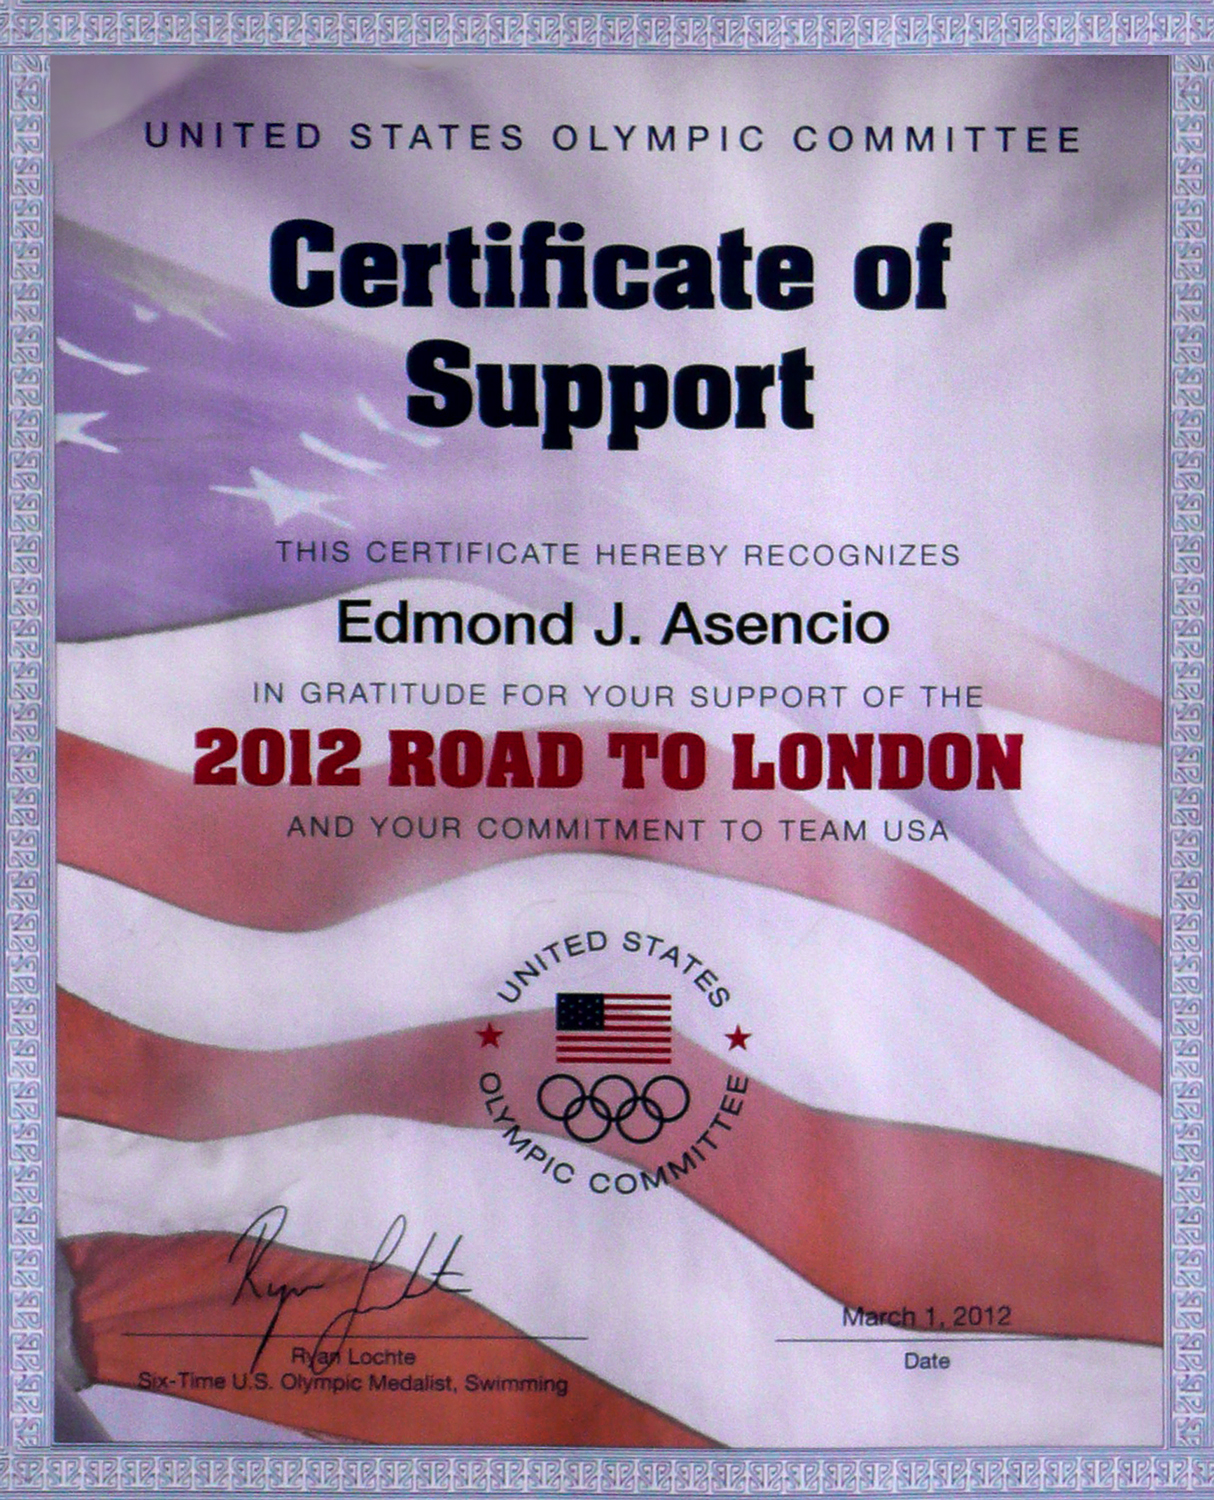 certificate for supporting the 2012 Road to London